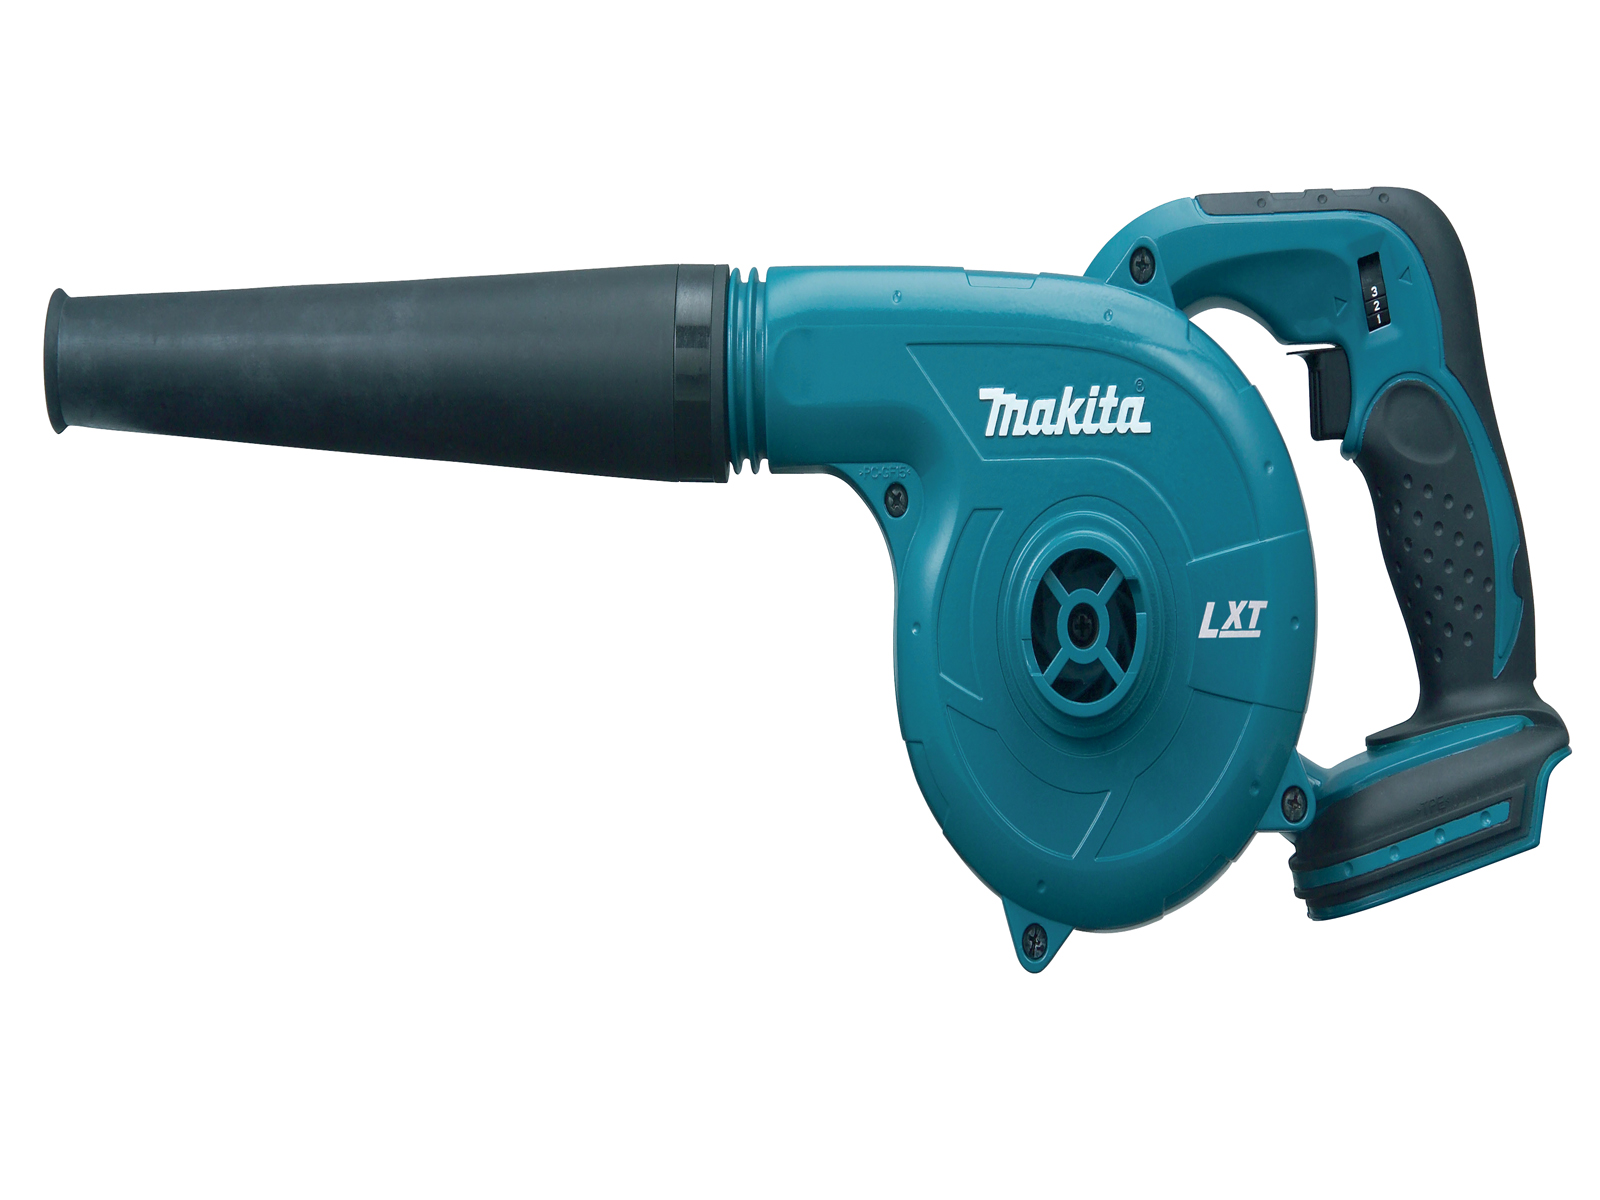 Makita 18V Brushed LXT Cordless 3 Speed Blower - DUB185 - Body Only